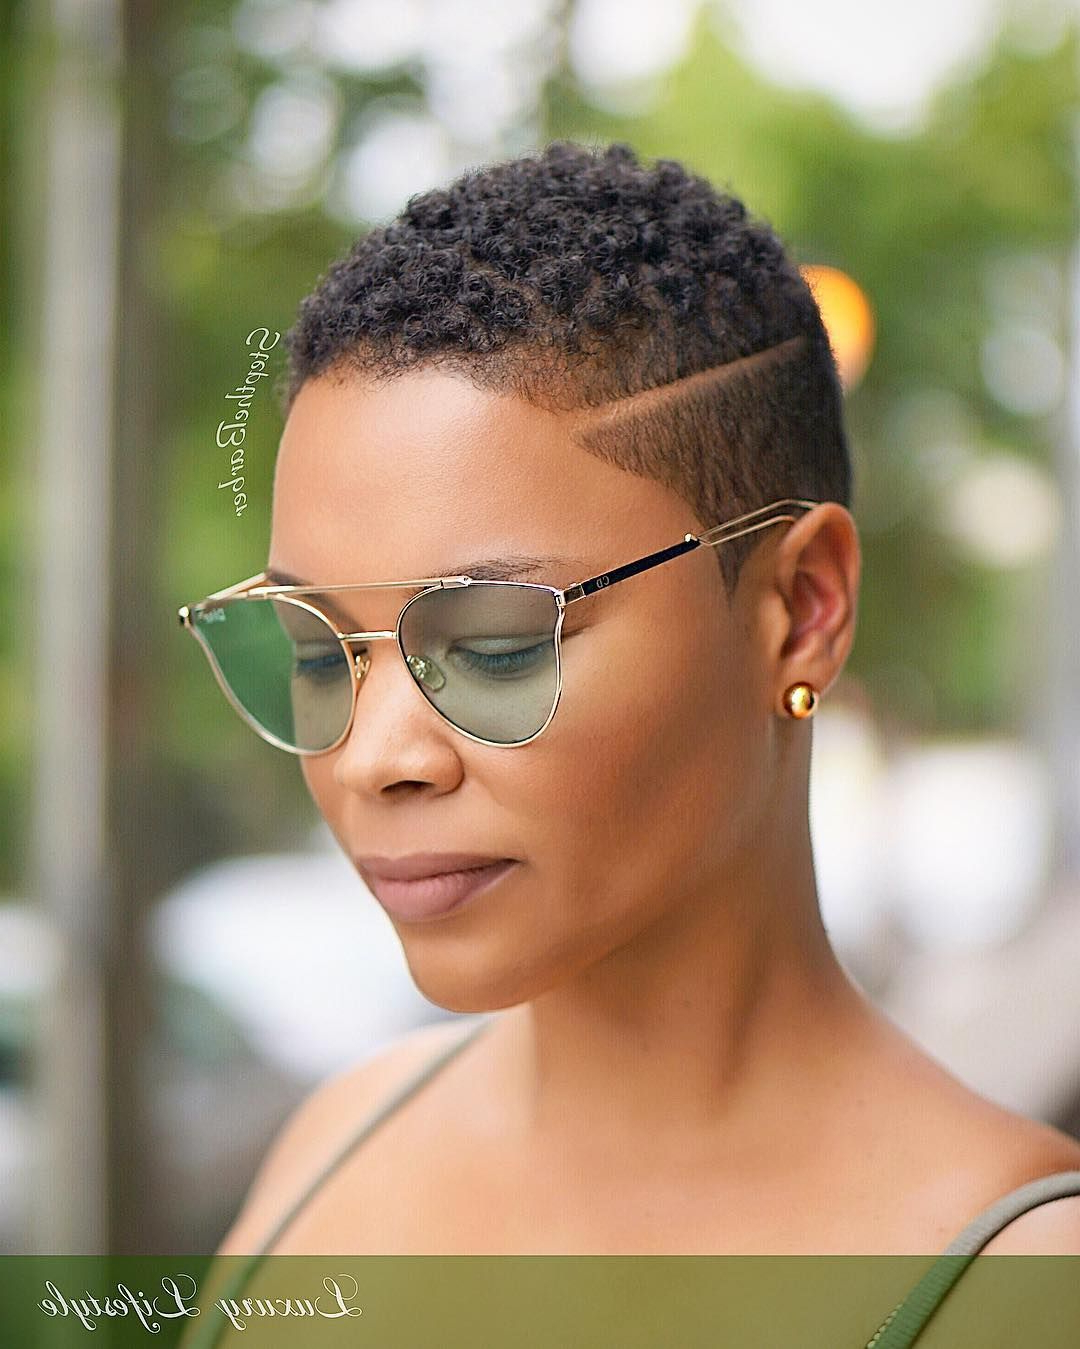 Tapered Haircut With A Disconnected Side Part (View 20 of 20)